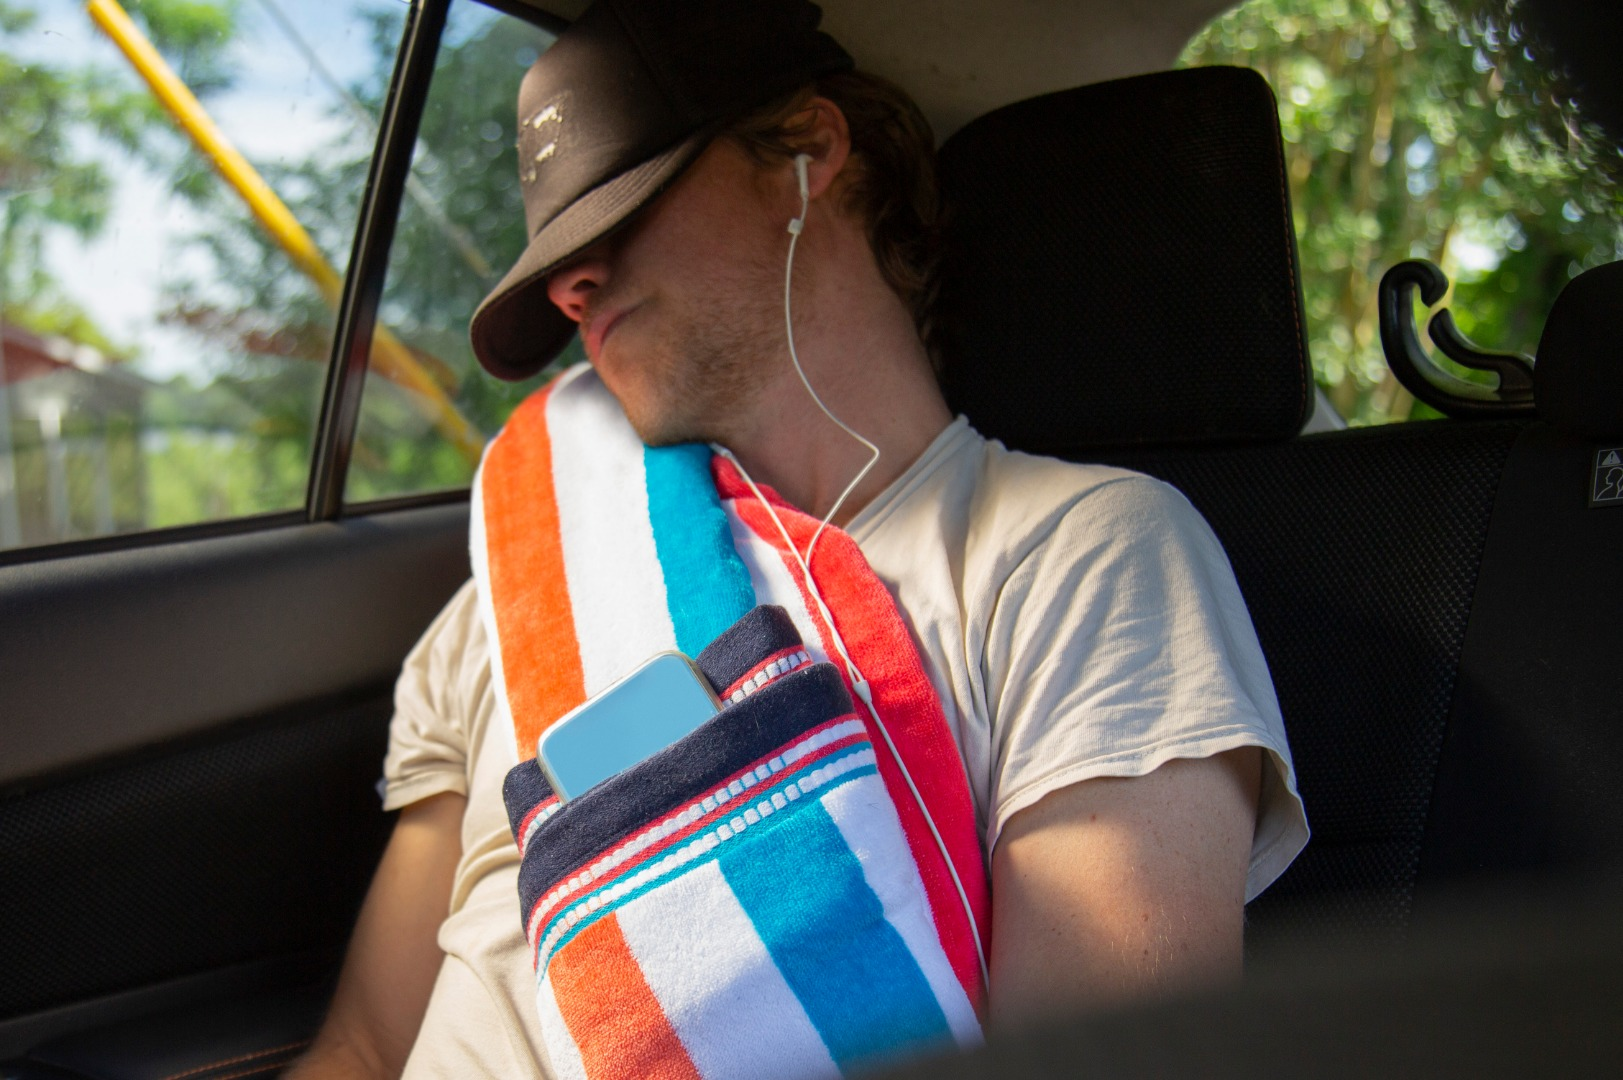 Man wearing a hat pulled over his eyes, sleeping in a car, wearing headphones, resting head against a colorful neck pillow.